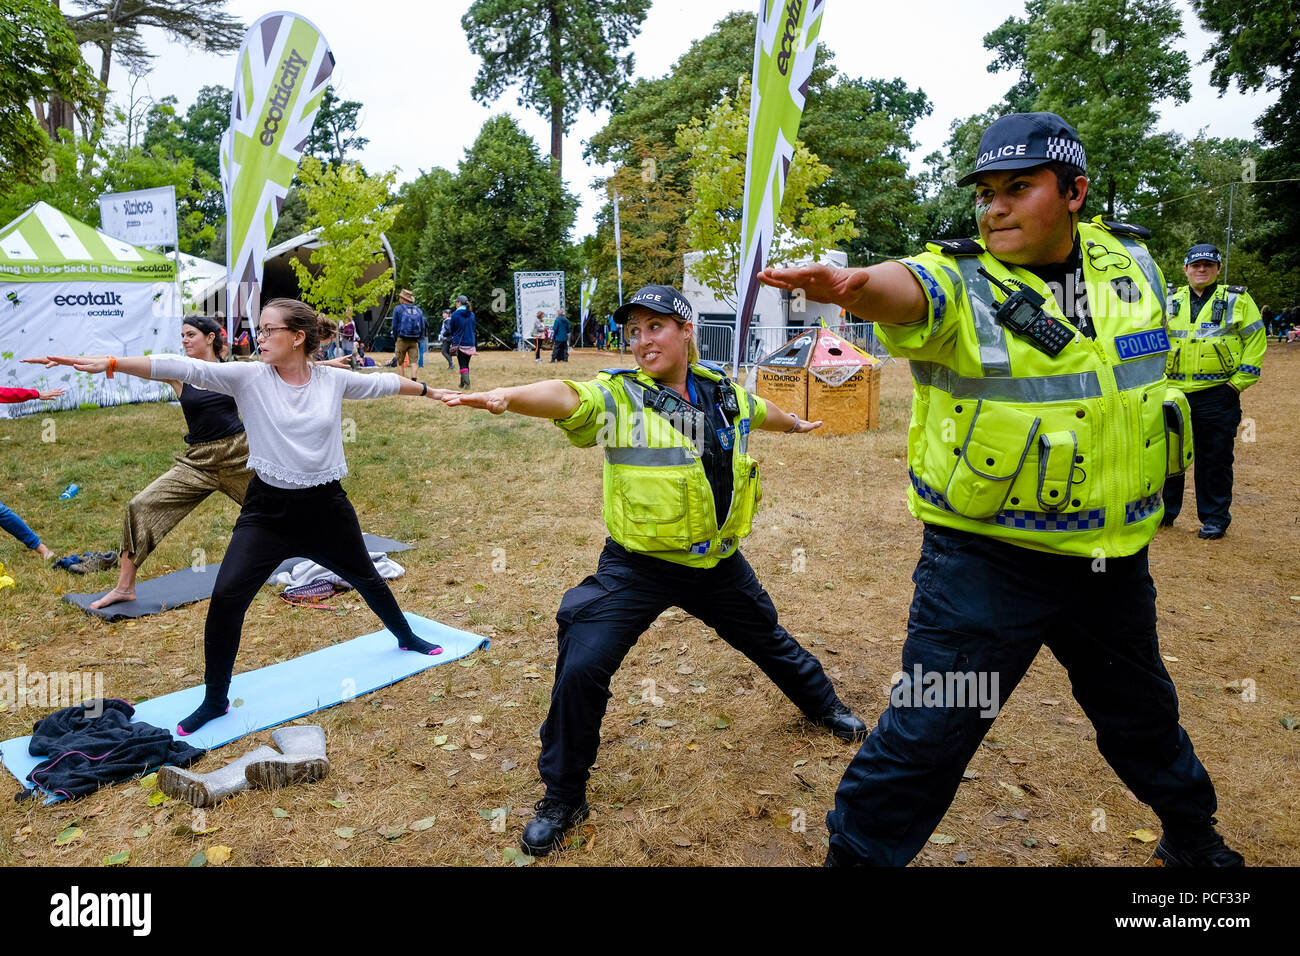 Police join a Yoga Class at WOMAD on Sunday 29 July 2018 held at Charlton Park, Wiltshire . Pictured: 2 Police officers of the Wiltshire Police Force joined in a free Yoga Class taking place in the World of Wellbeing . Stock Photo